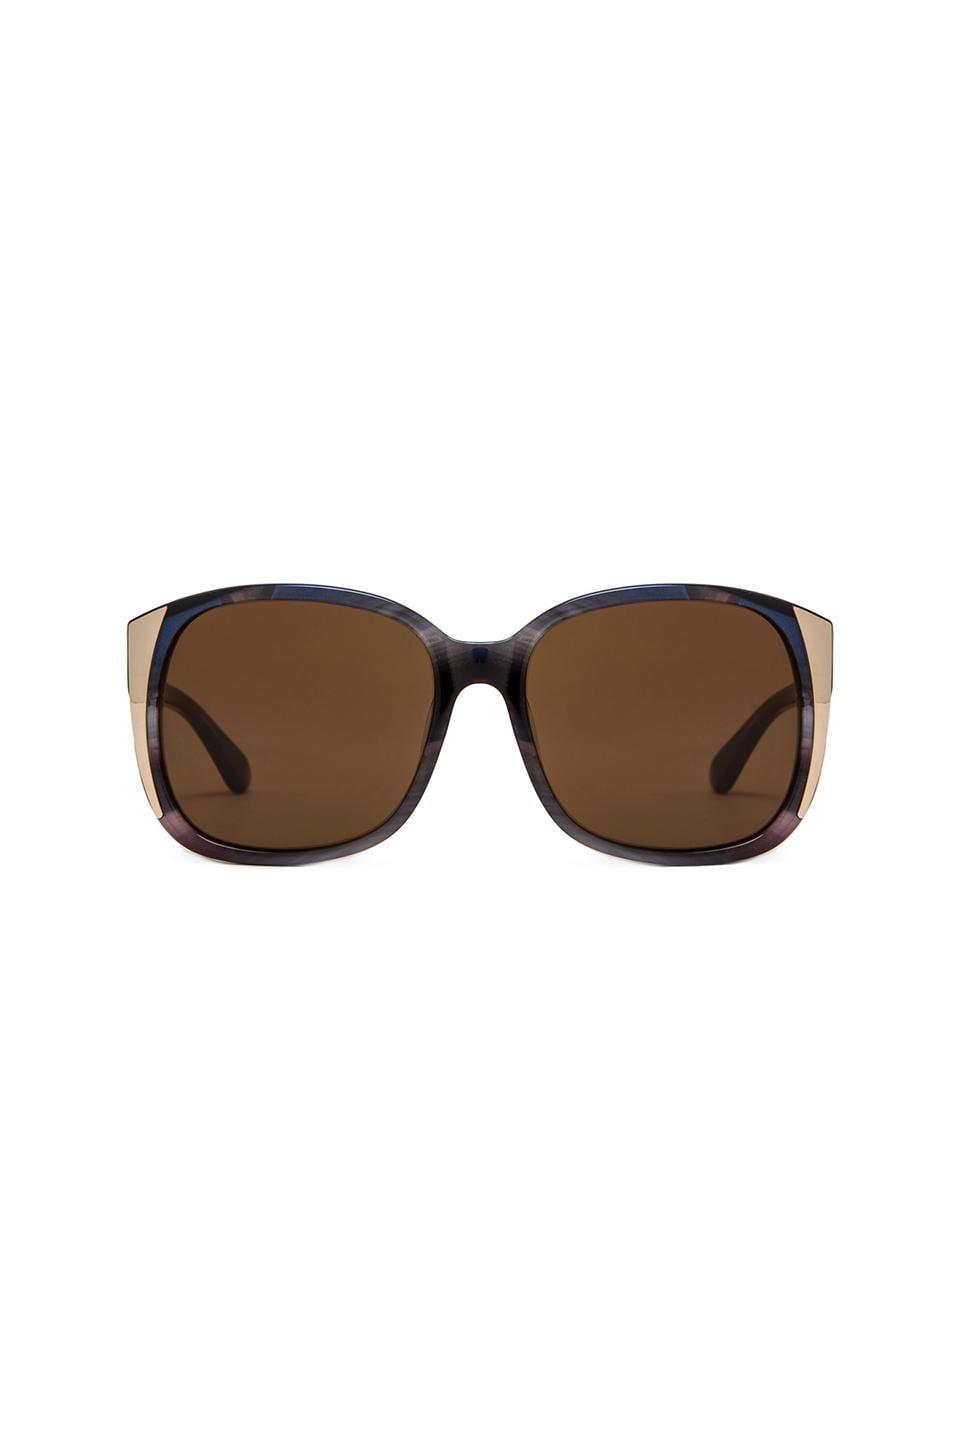 House of Harlow 1960 House of Harlow Julie Sunglasses in Iridescent Black